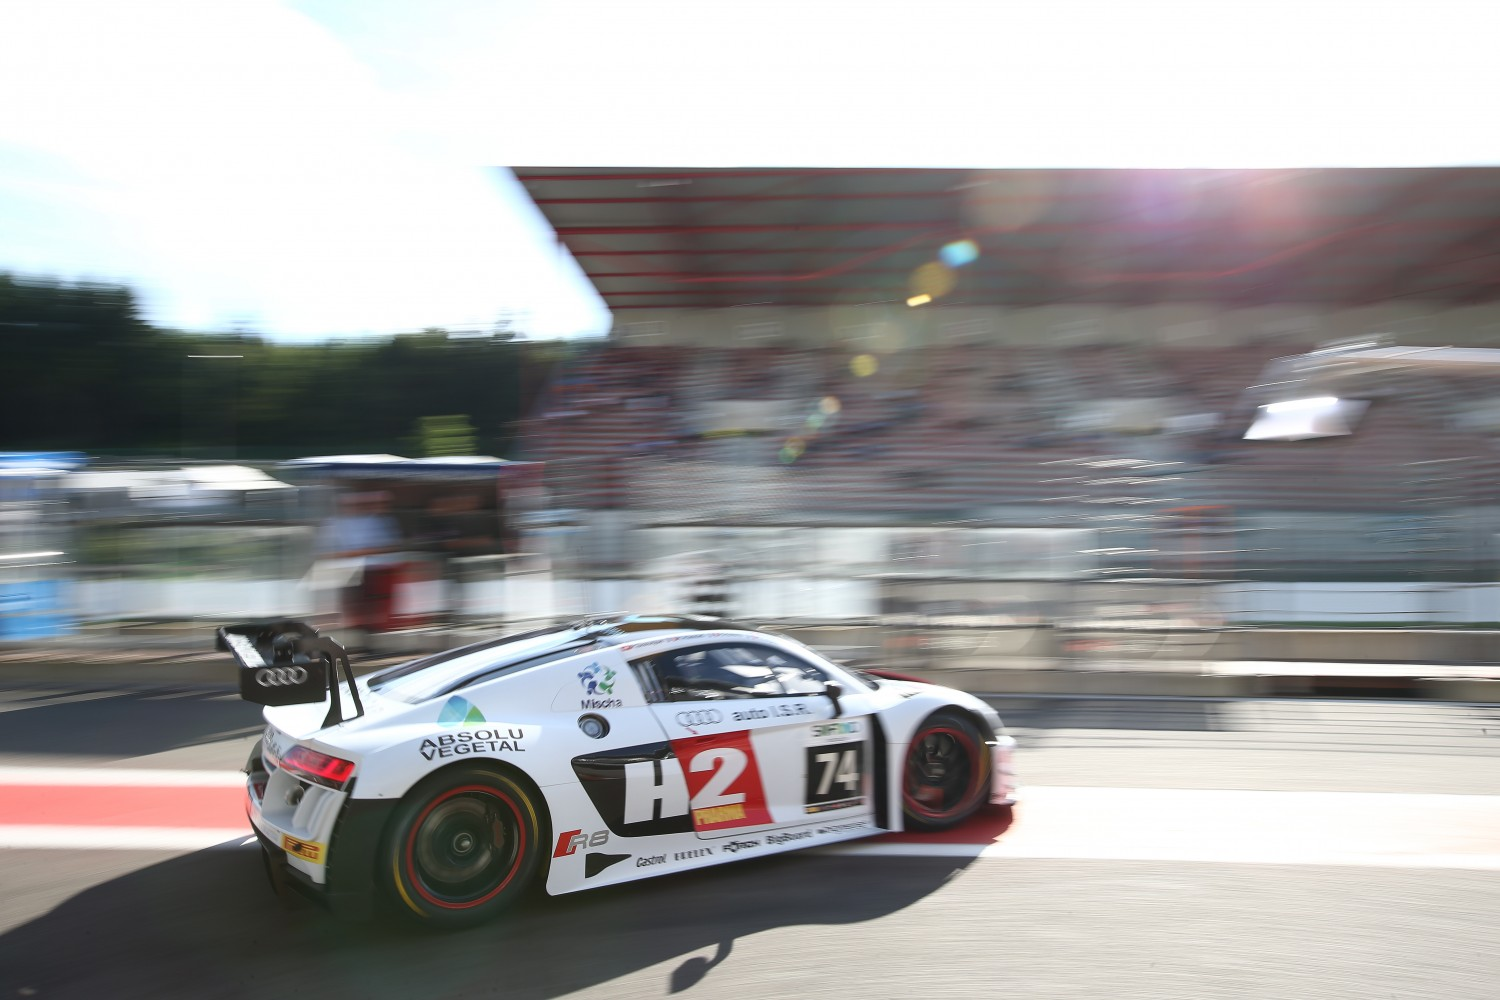 #74 ISR (CZE) AUDI R8 LMS GT3 HENRY HASSID (FRA) PHILIPPE GIAUQUE (CHE) FRANCK PERERA (FRA) NICOLAS LAPIERRE (FRA) | OLIVIER BEROUD / VISION SPORT AGENCY